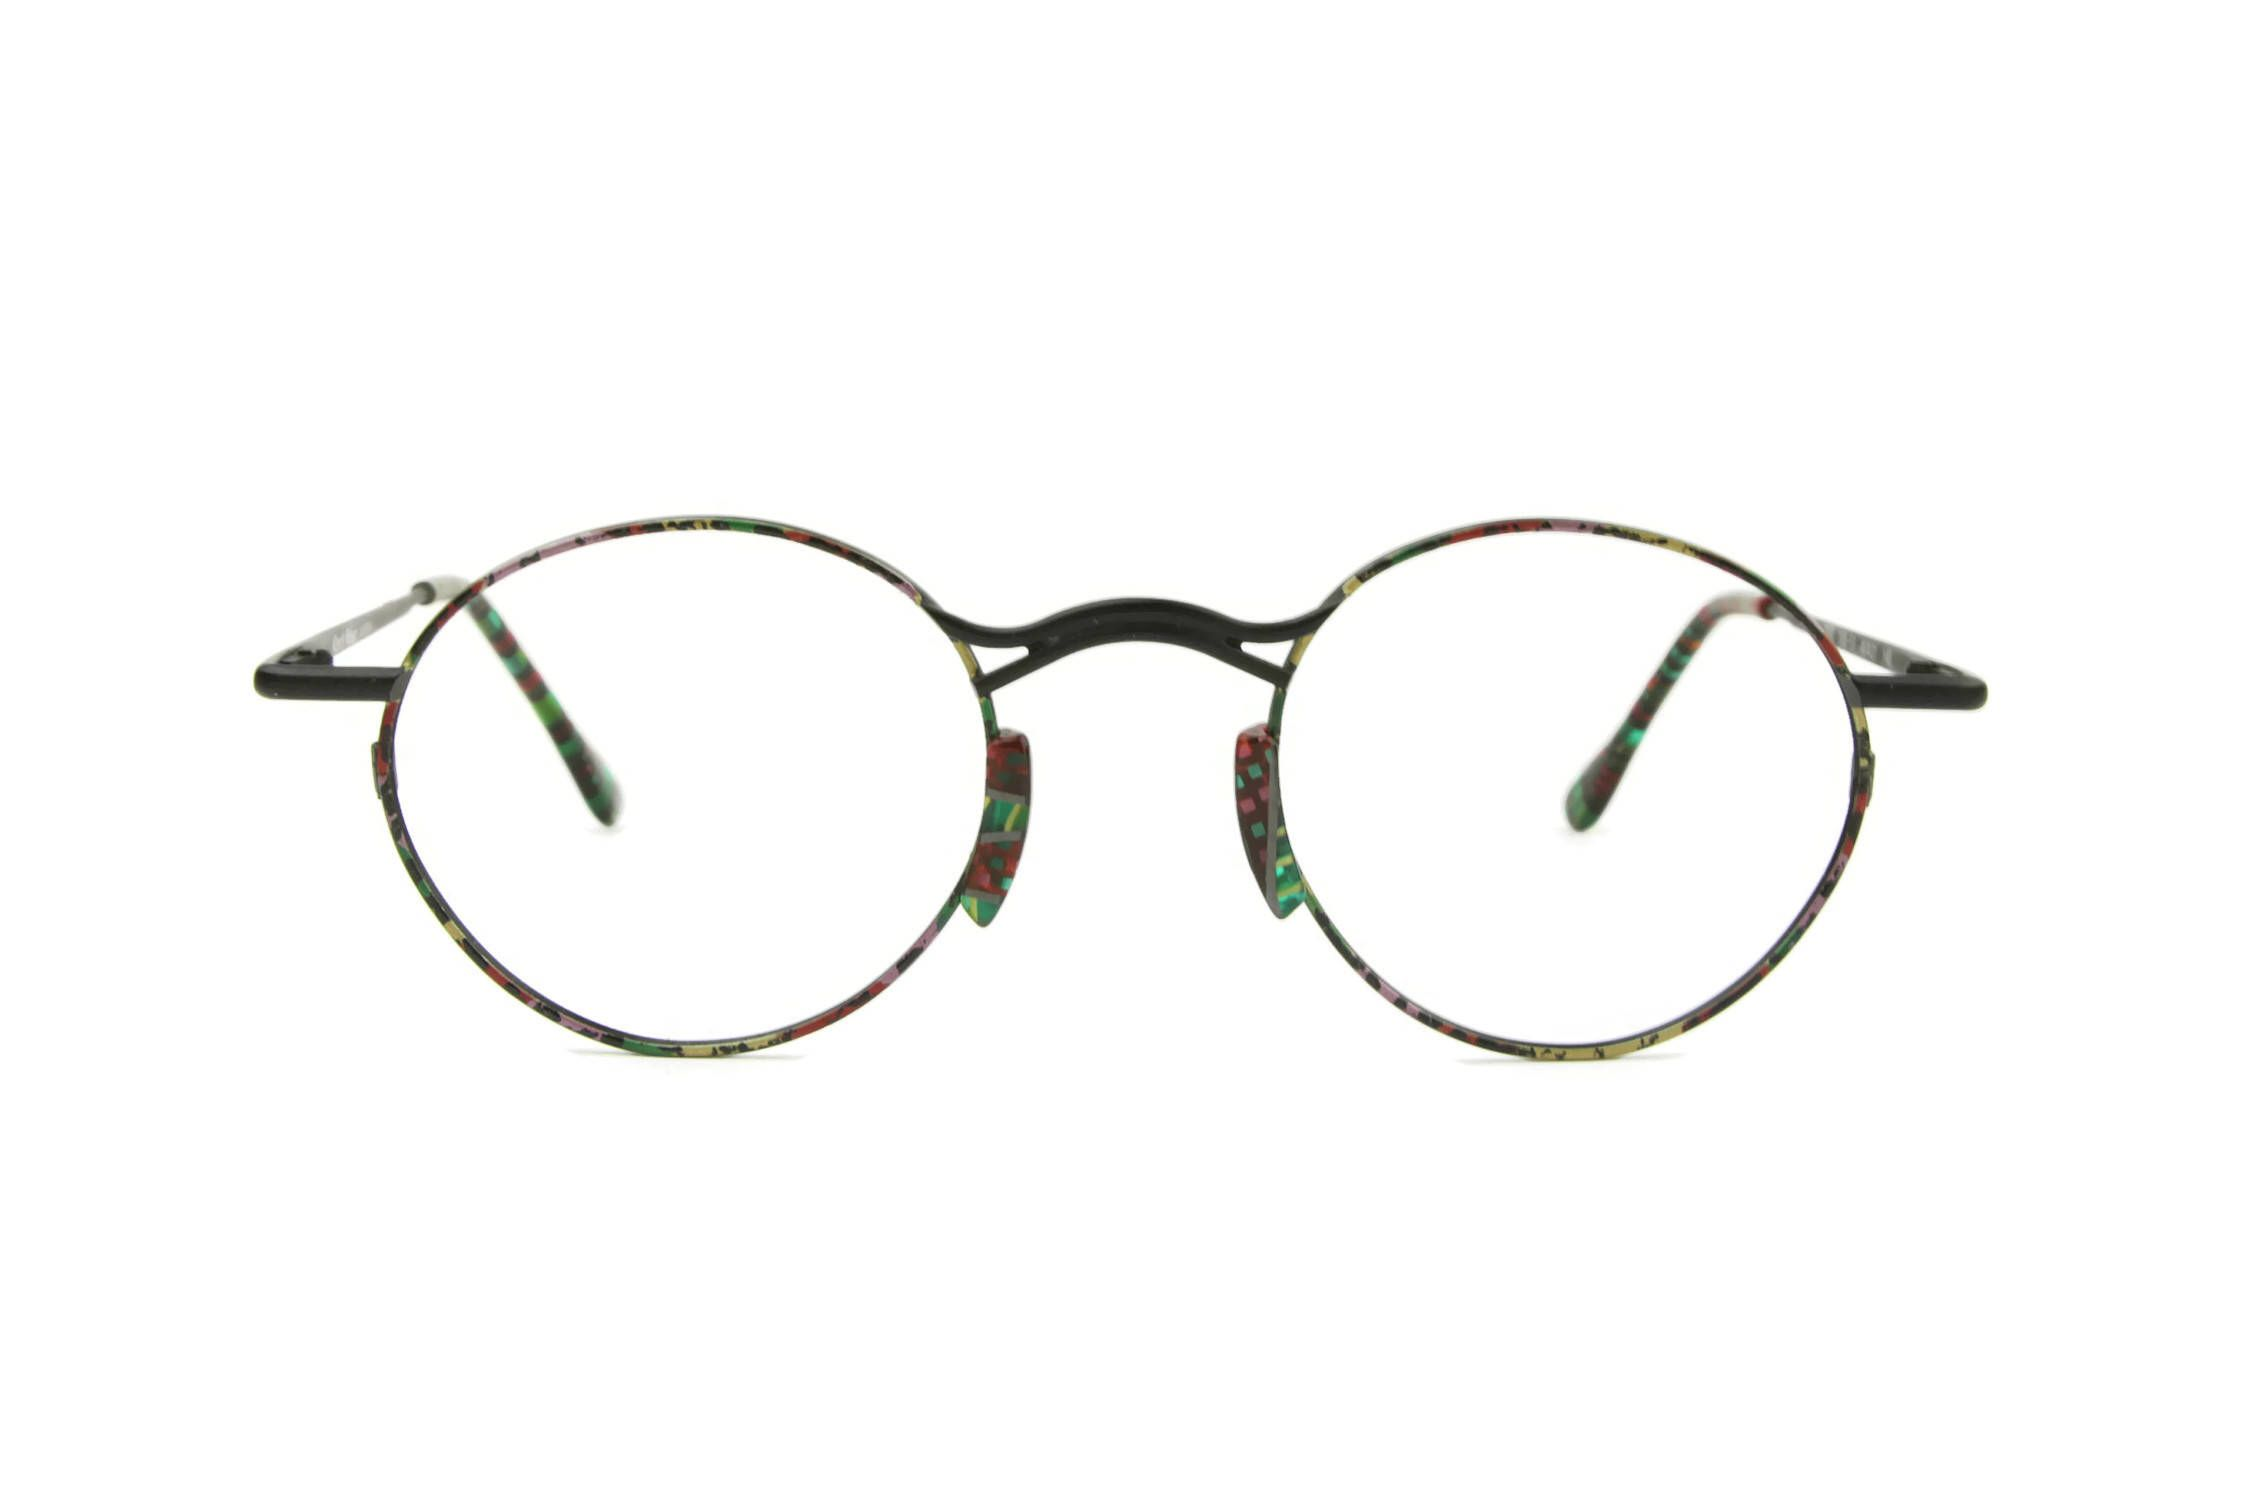 Glasses true vintage cool modern style panto round glasses Robert ...